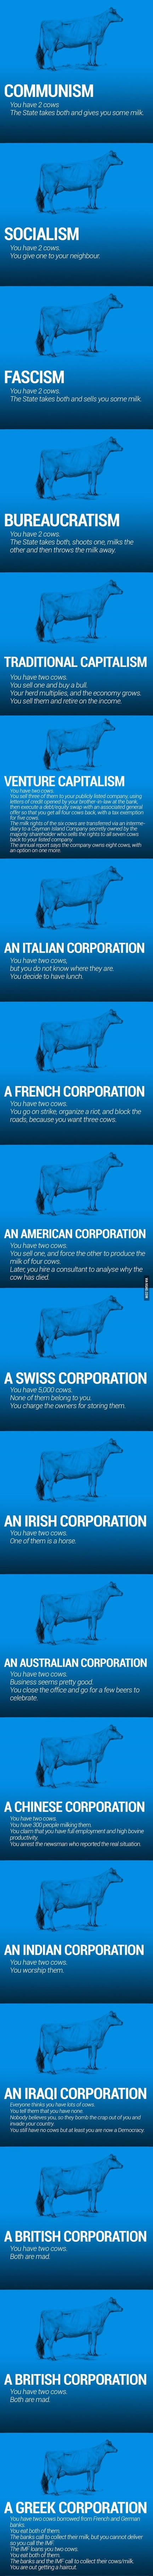 Funny World Economy Explained using 2 Cows Joke Picture